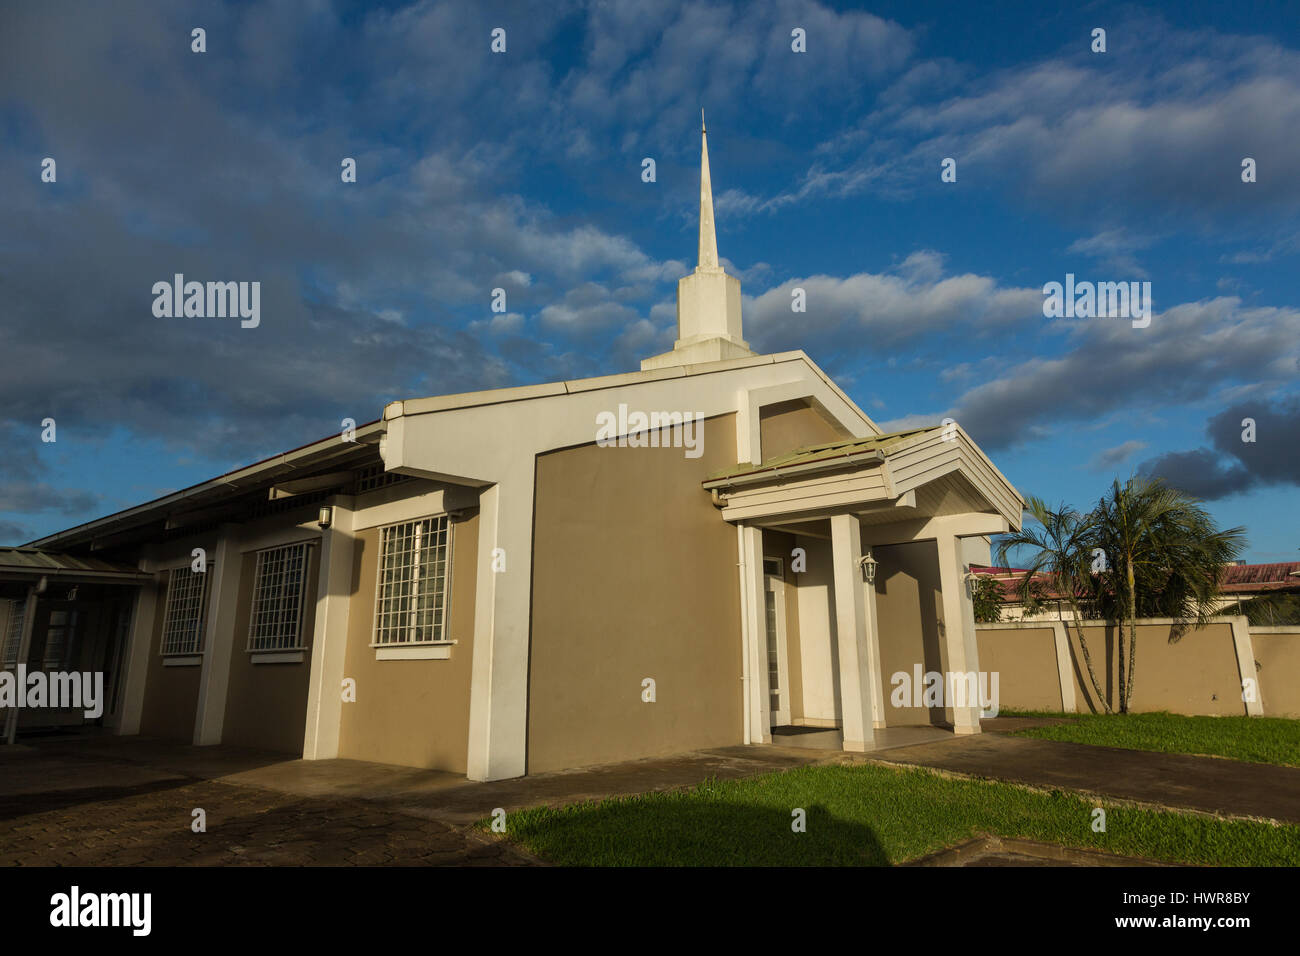 Meetinghouse or chapel of the Church of Jesus Christ of Latter-day Saints, or Mormons, in Paramaribo, Suriname. - Stock Image